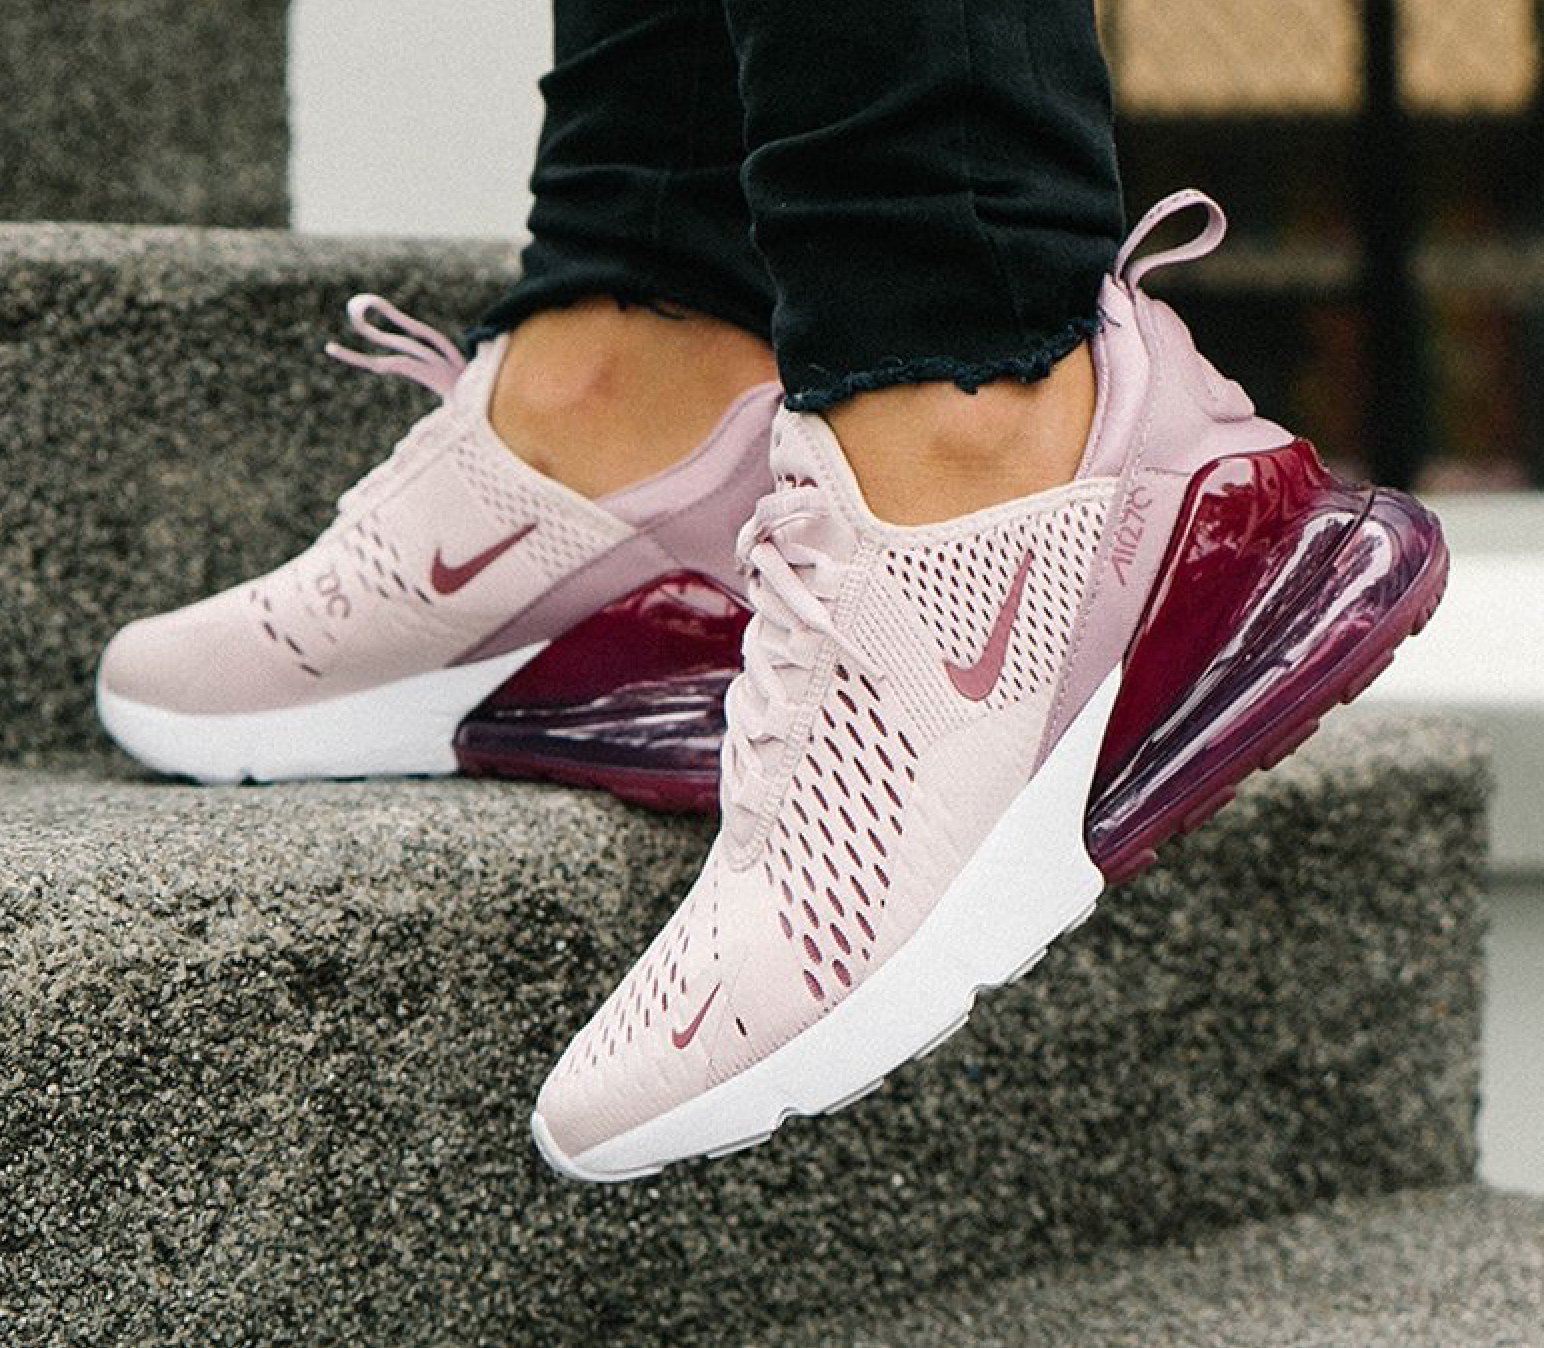 finest selection 5e084 4a5b0 Cool Nike Air Max 270 shoes Barely Rose walking up street steps in black  jeans.